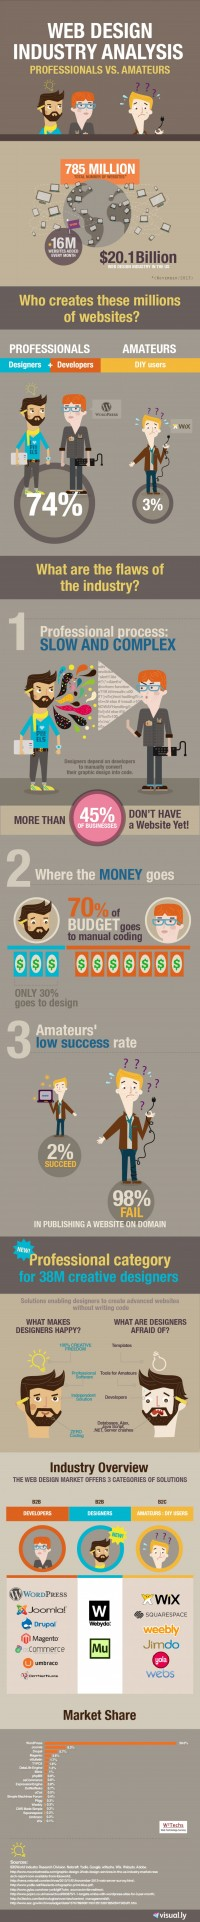 Web Design Industry Analysis/Professionals vs Amateurs | Downgraf